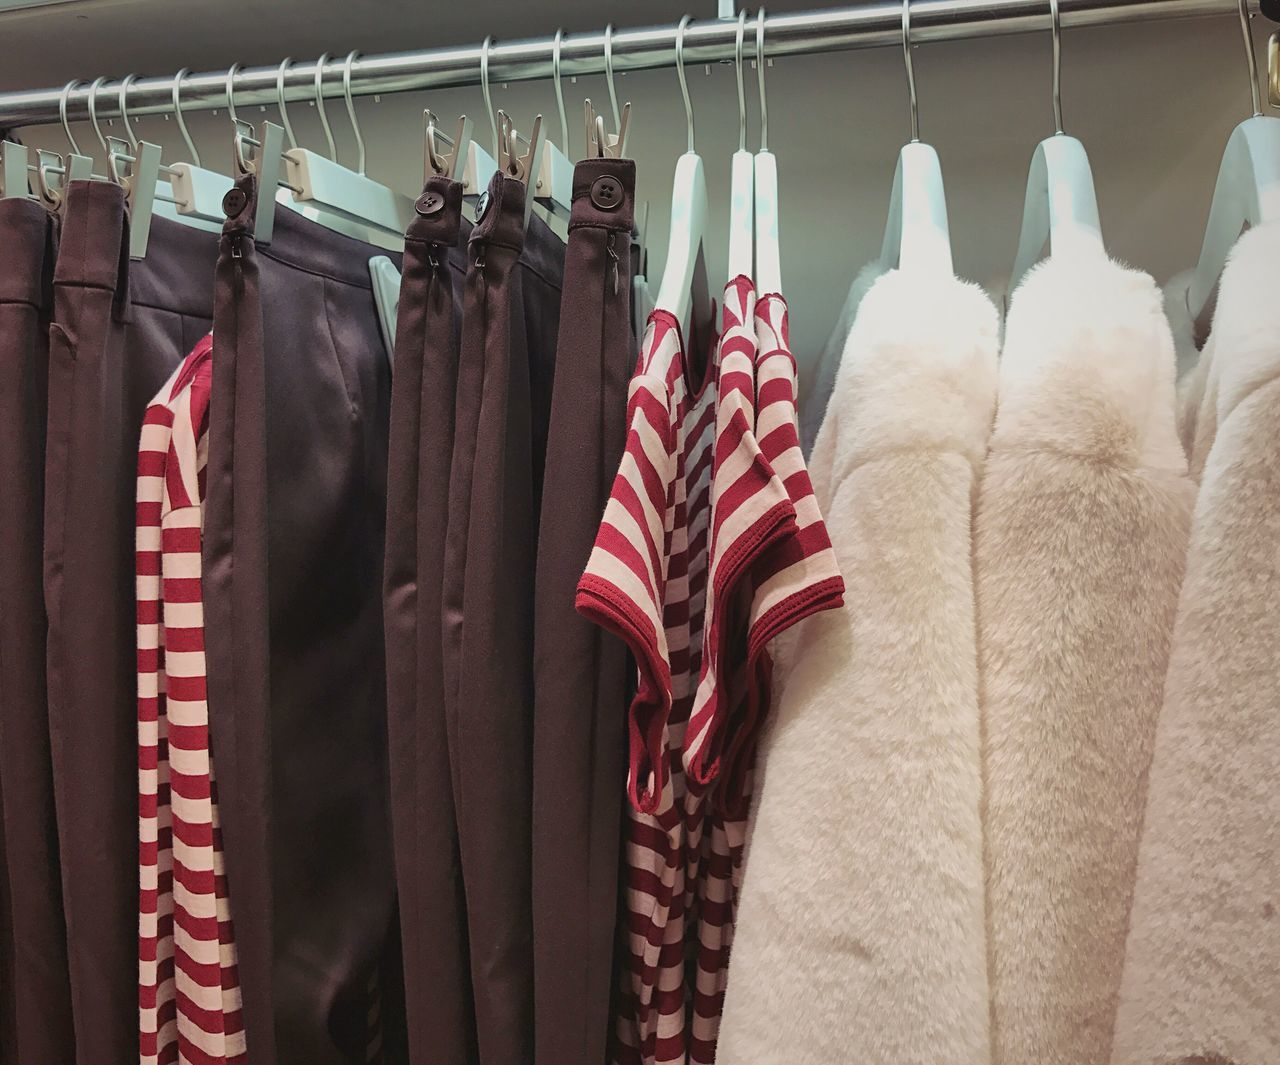 Shopping 👚👗👕 Hanging Coathanger Clothing Clothing Store Clothes Rack Retail  Choice Variation Large Group Of Objects Warm Collection Store No People Boutique Day Shop T-shirt Jacket Stripes Pattern Clothes Fashion Style